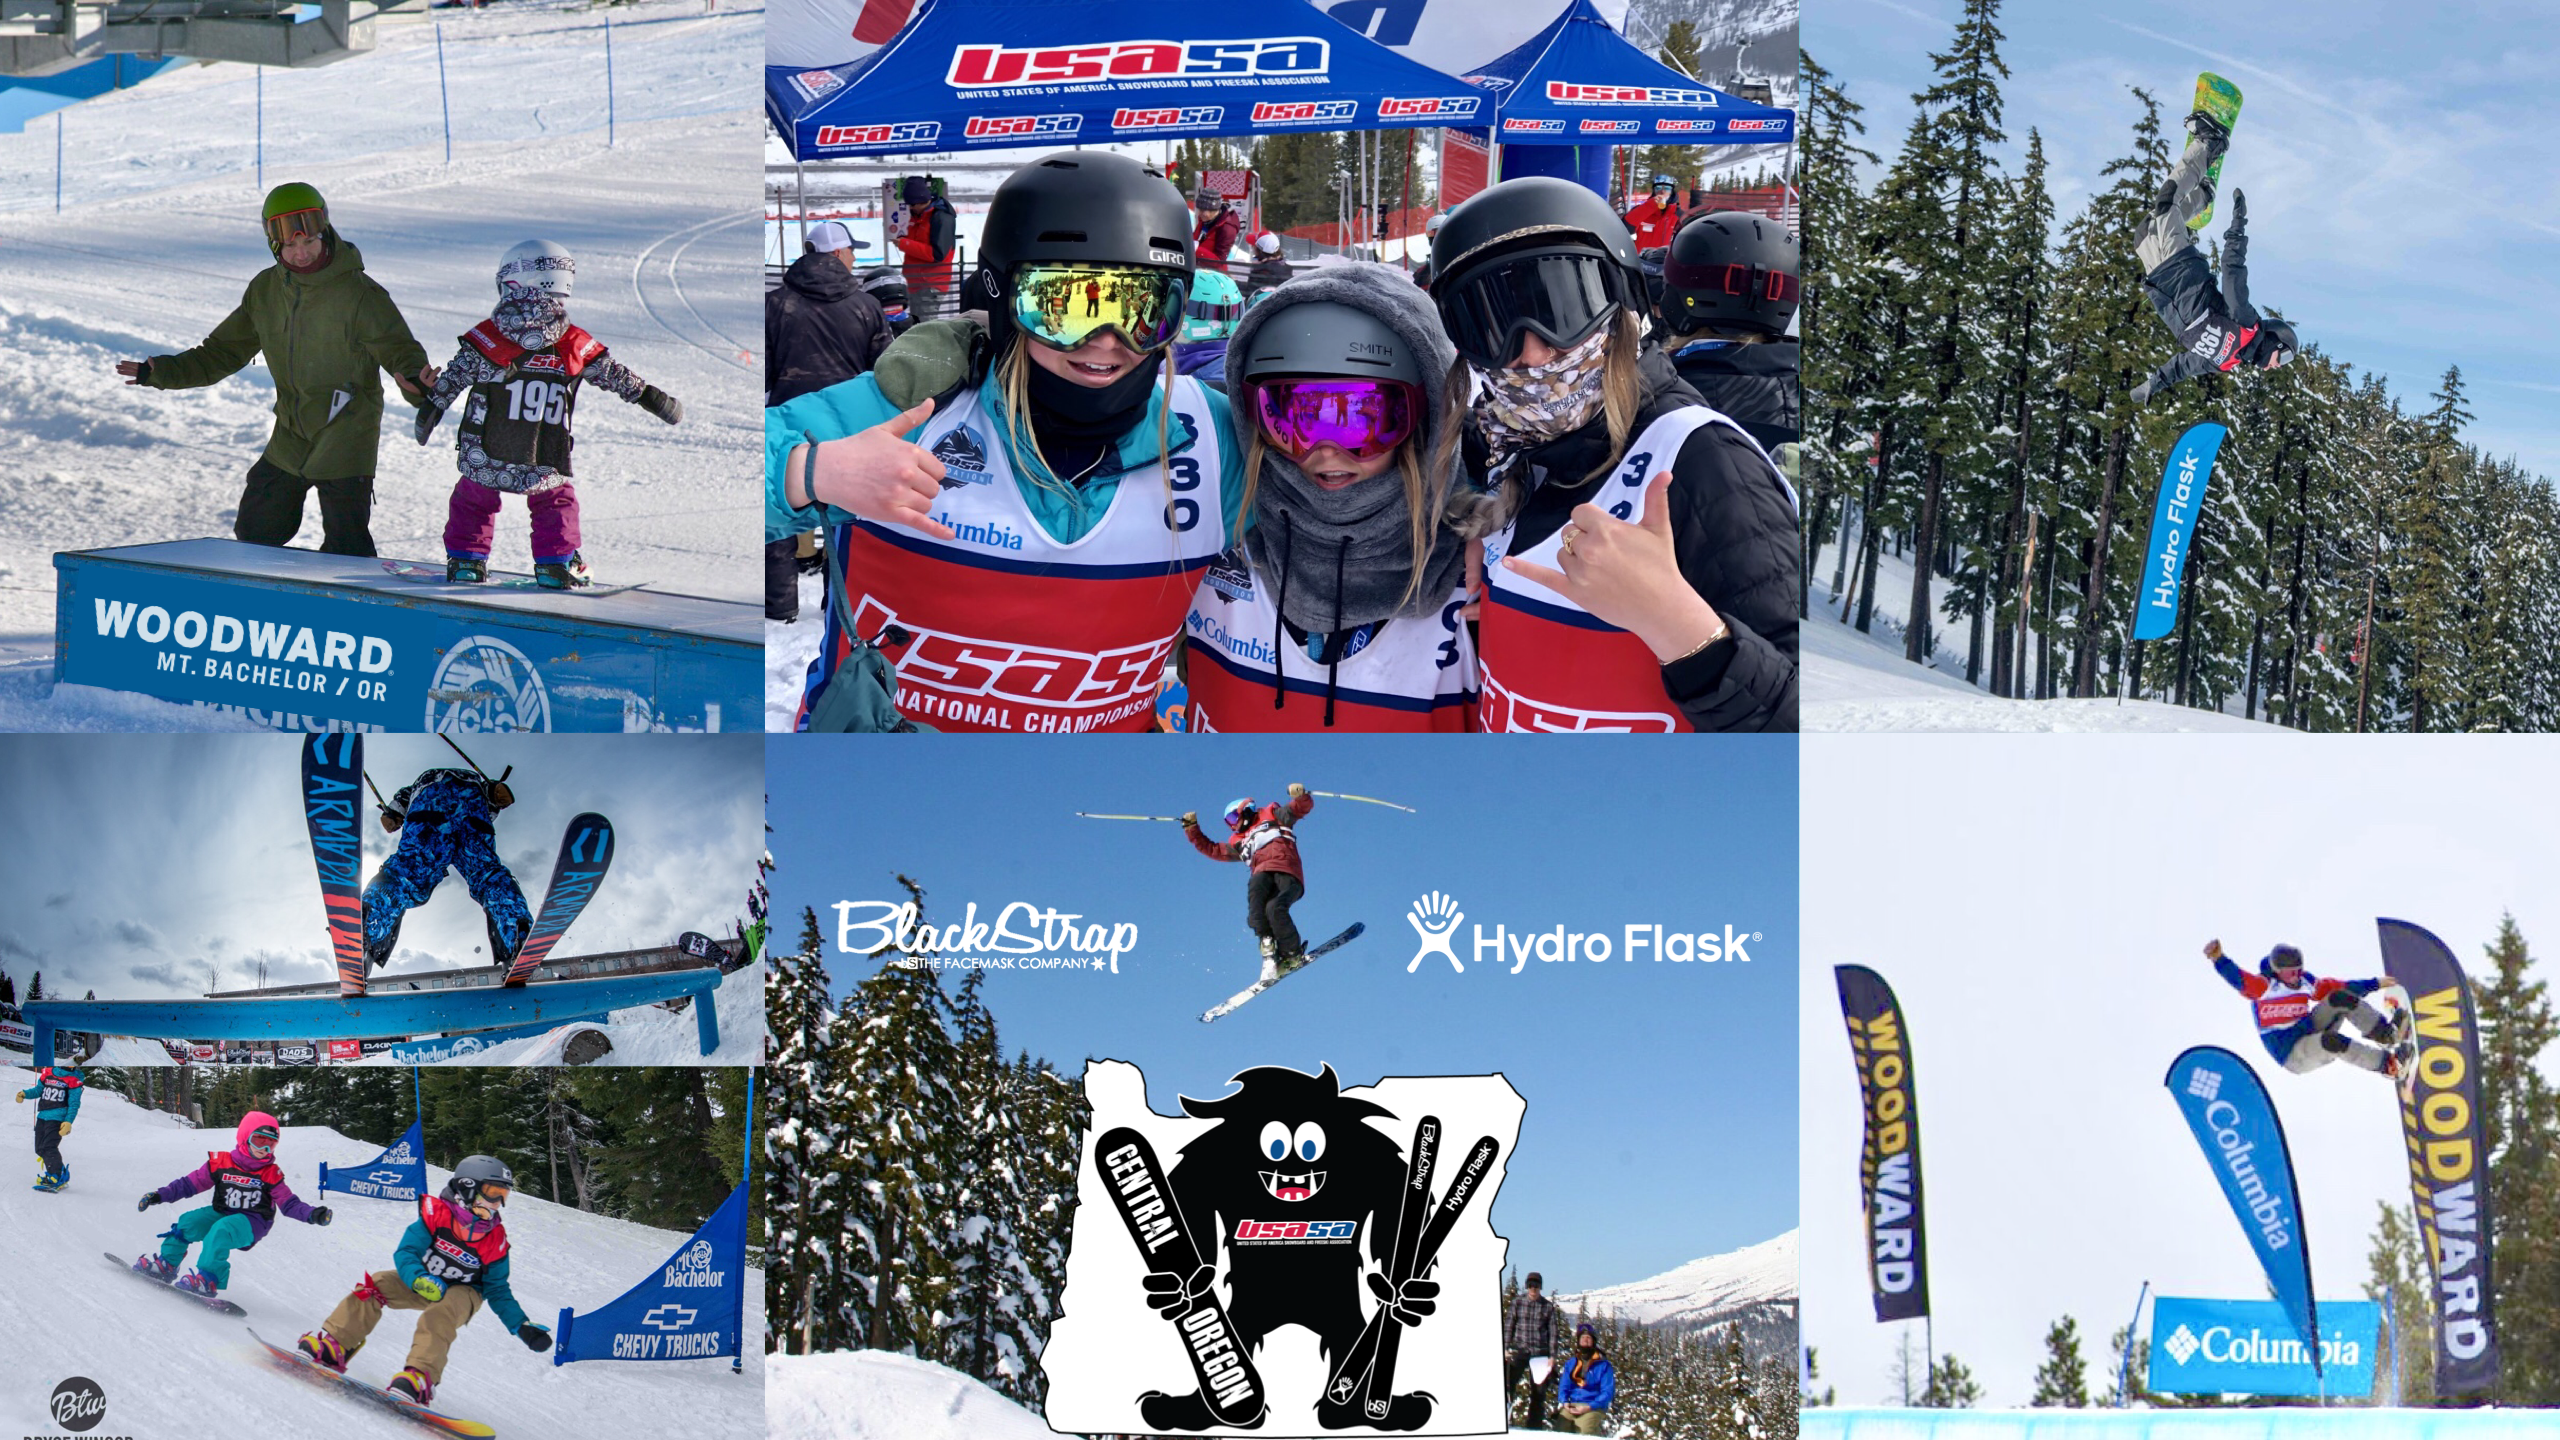 The Central Oregon USASA Series based in Bend, OR Mt. Bachelor